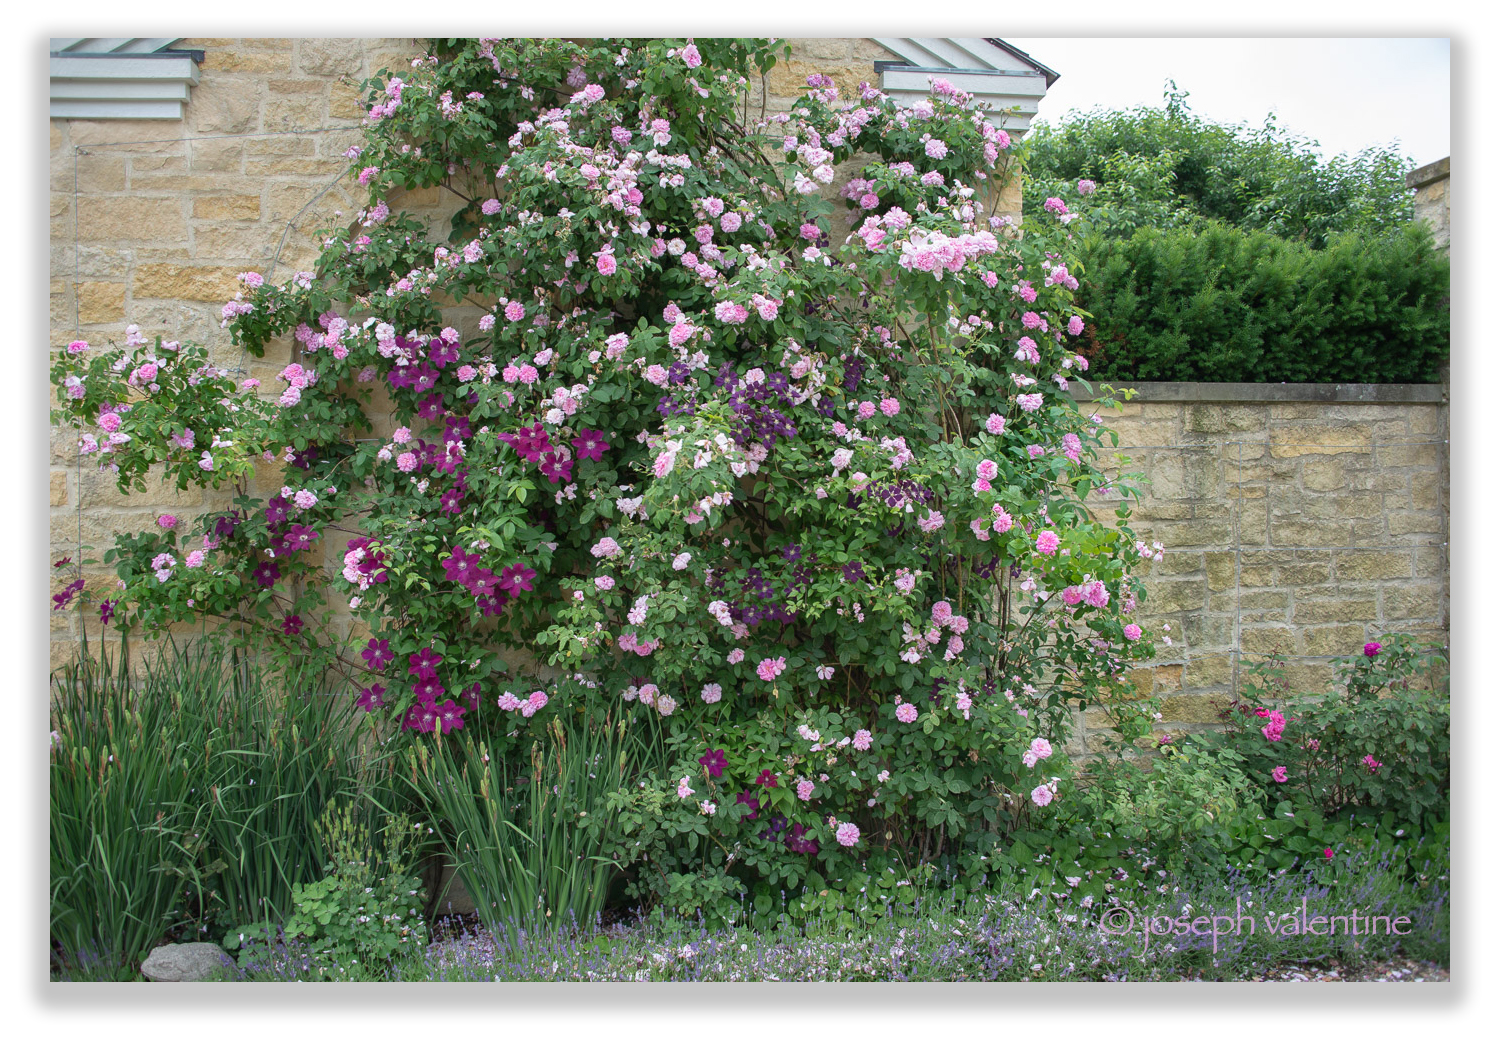 Roses and clematis scramble up a wall together in Linda Allard's Connecticut garden. It's no surprise that Linda's garden oozes with style. For many years Linda was the chief designer and creative genius behind Ellen Tracy fashions.